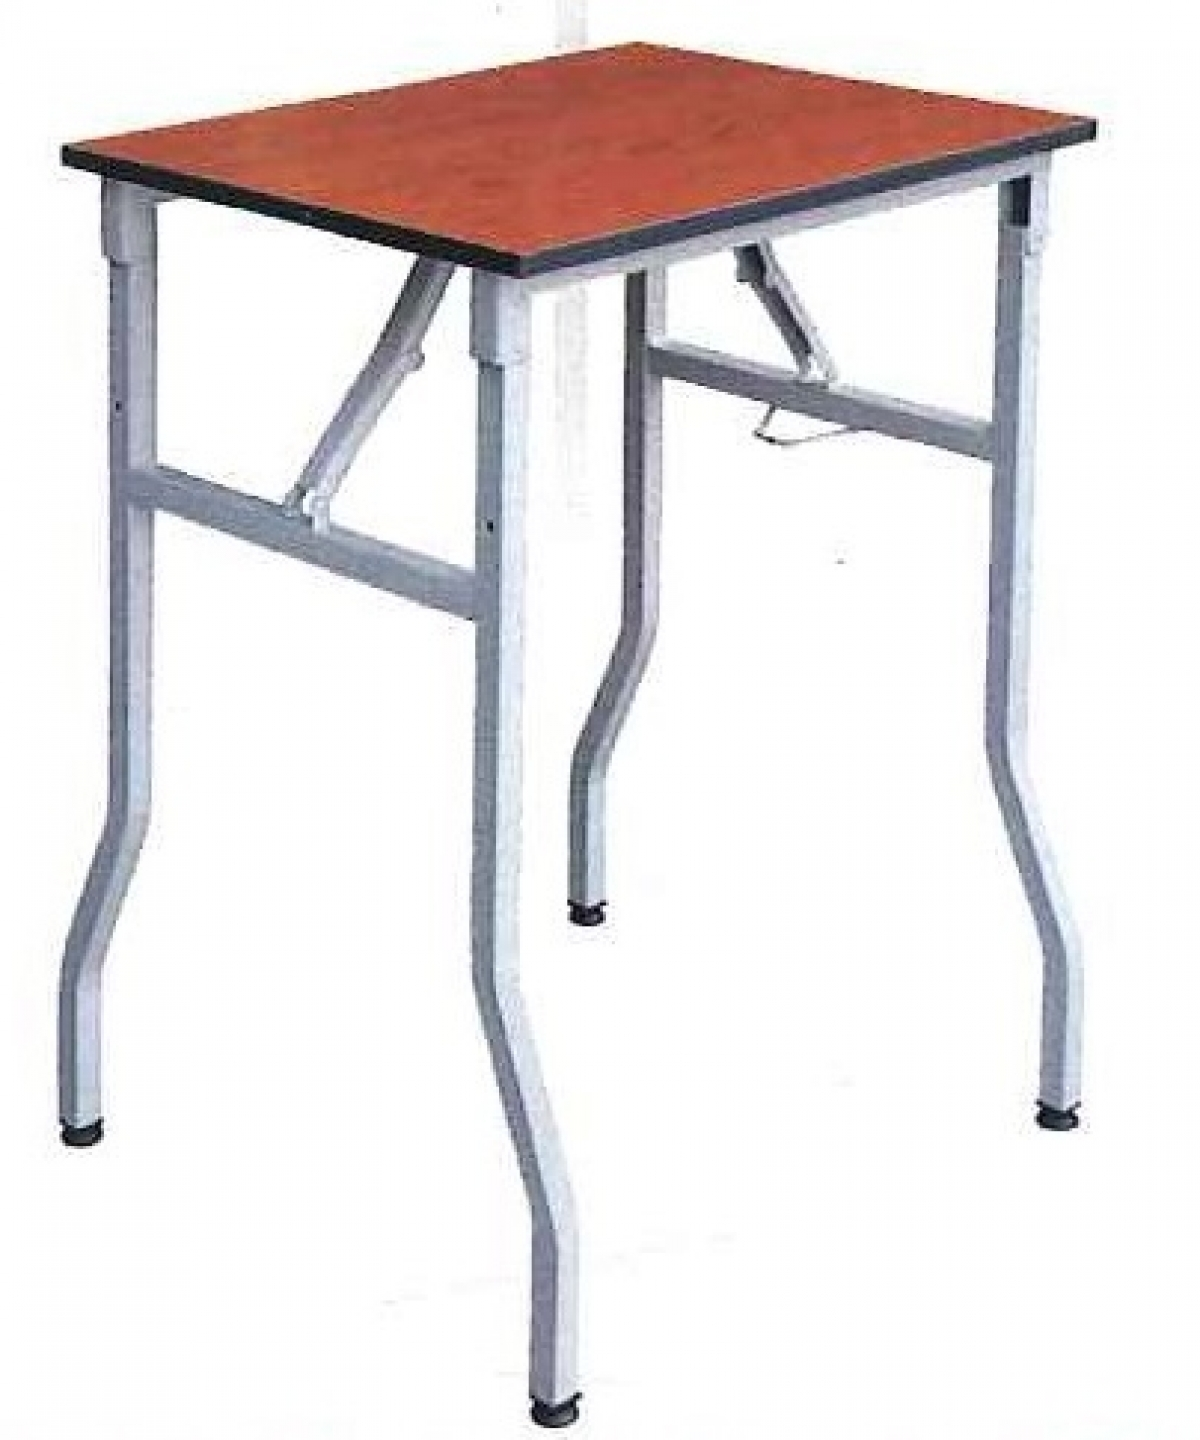 Foldable Study Table with Chipboard Top Model EH MFC 645  : 1639210 from www.furnituresmalaysia.com.my size 1200 x 1440 jpeg 482kB